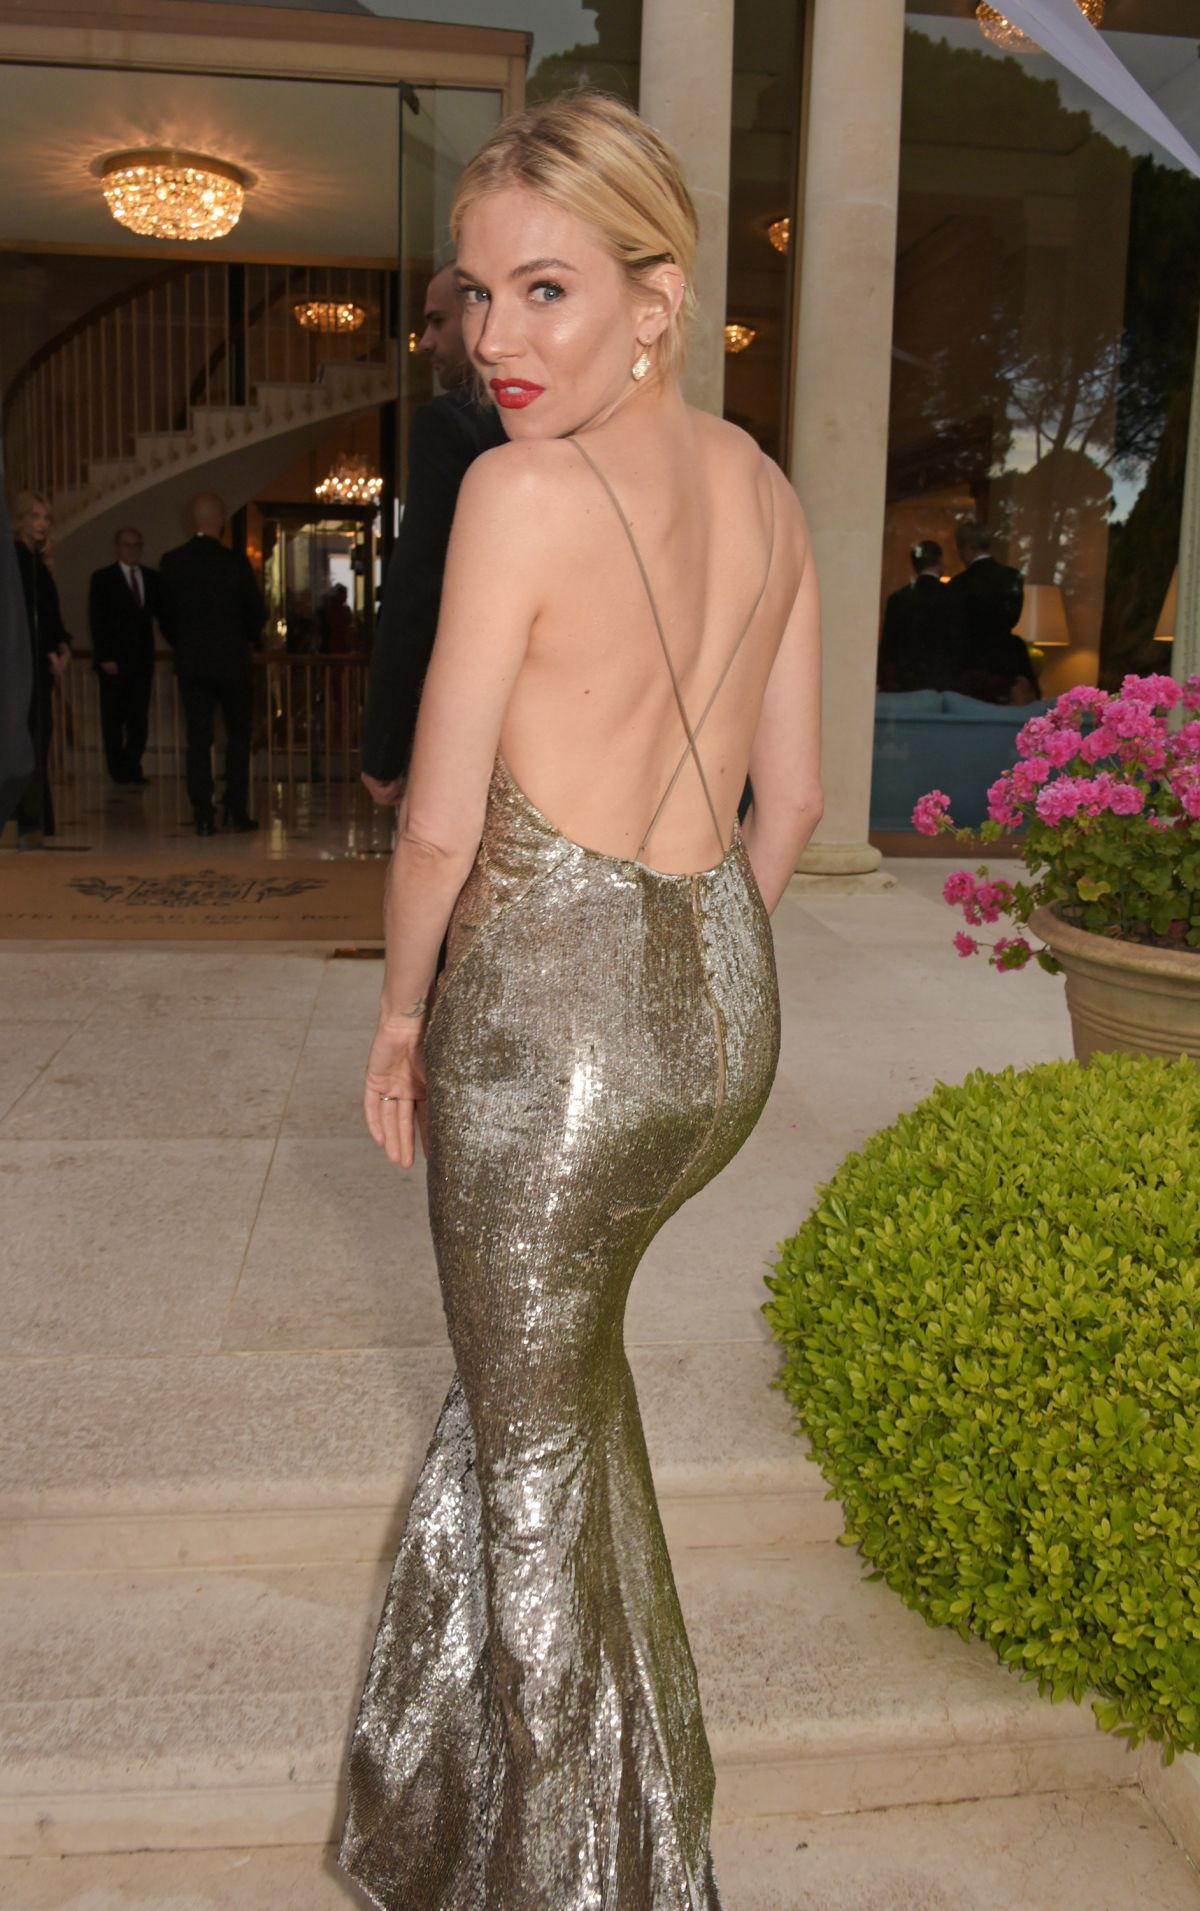 sienna-miller-at-amfar-s-2015-cinema-against-aids-gala-in-cap-d-antibes_9.jpg